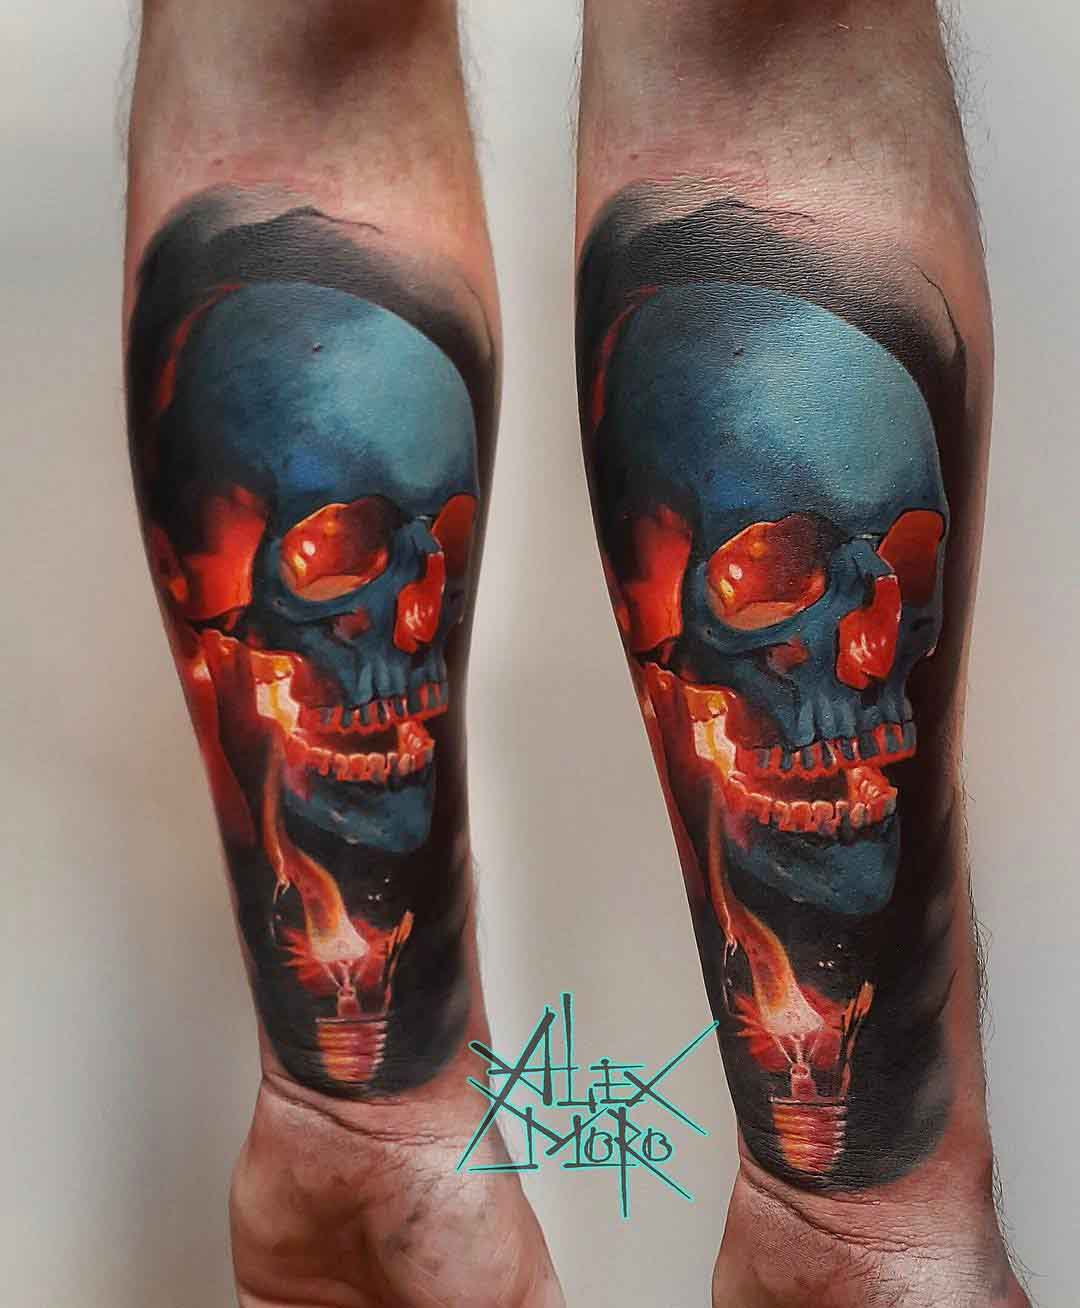 skull tatto on arm and lightbulb